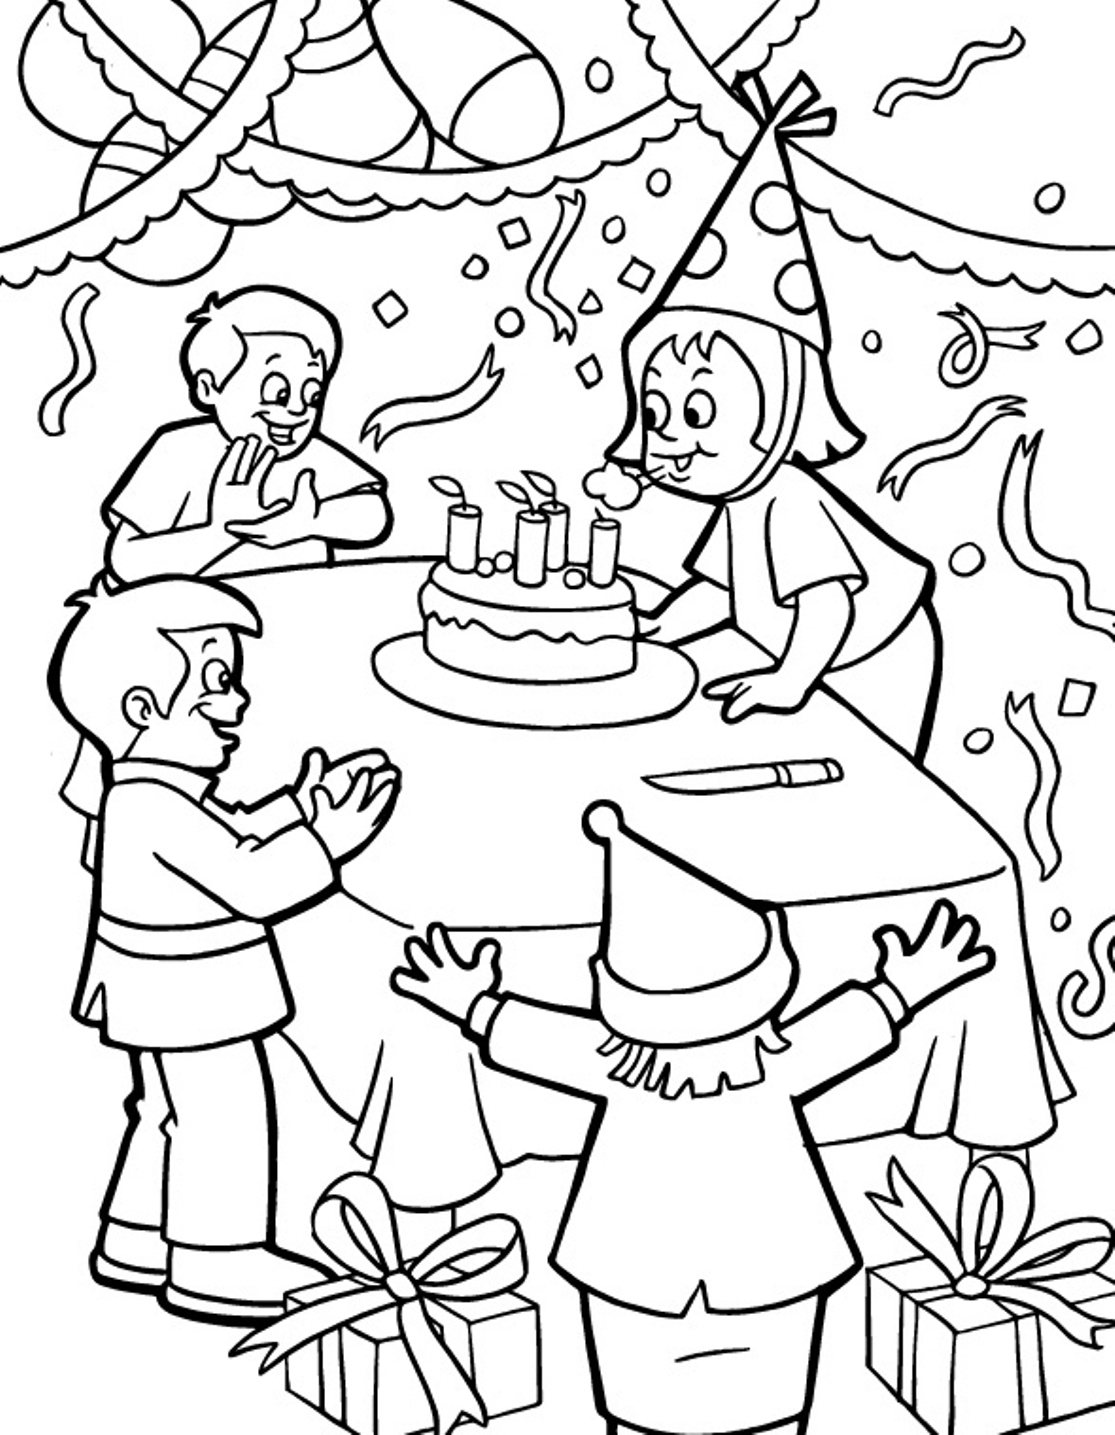 drawing of birthday scene ; birthday-party-scene-for-drawing-emejing-coloring-birthday-party-pictures-best-printable-coloring